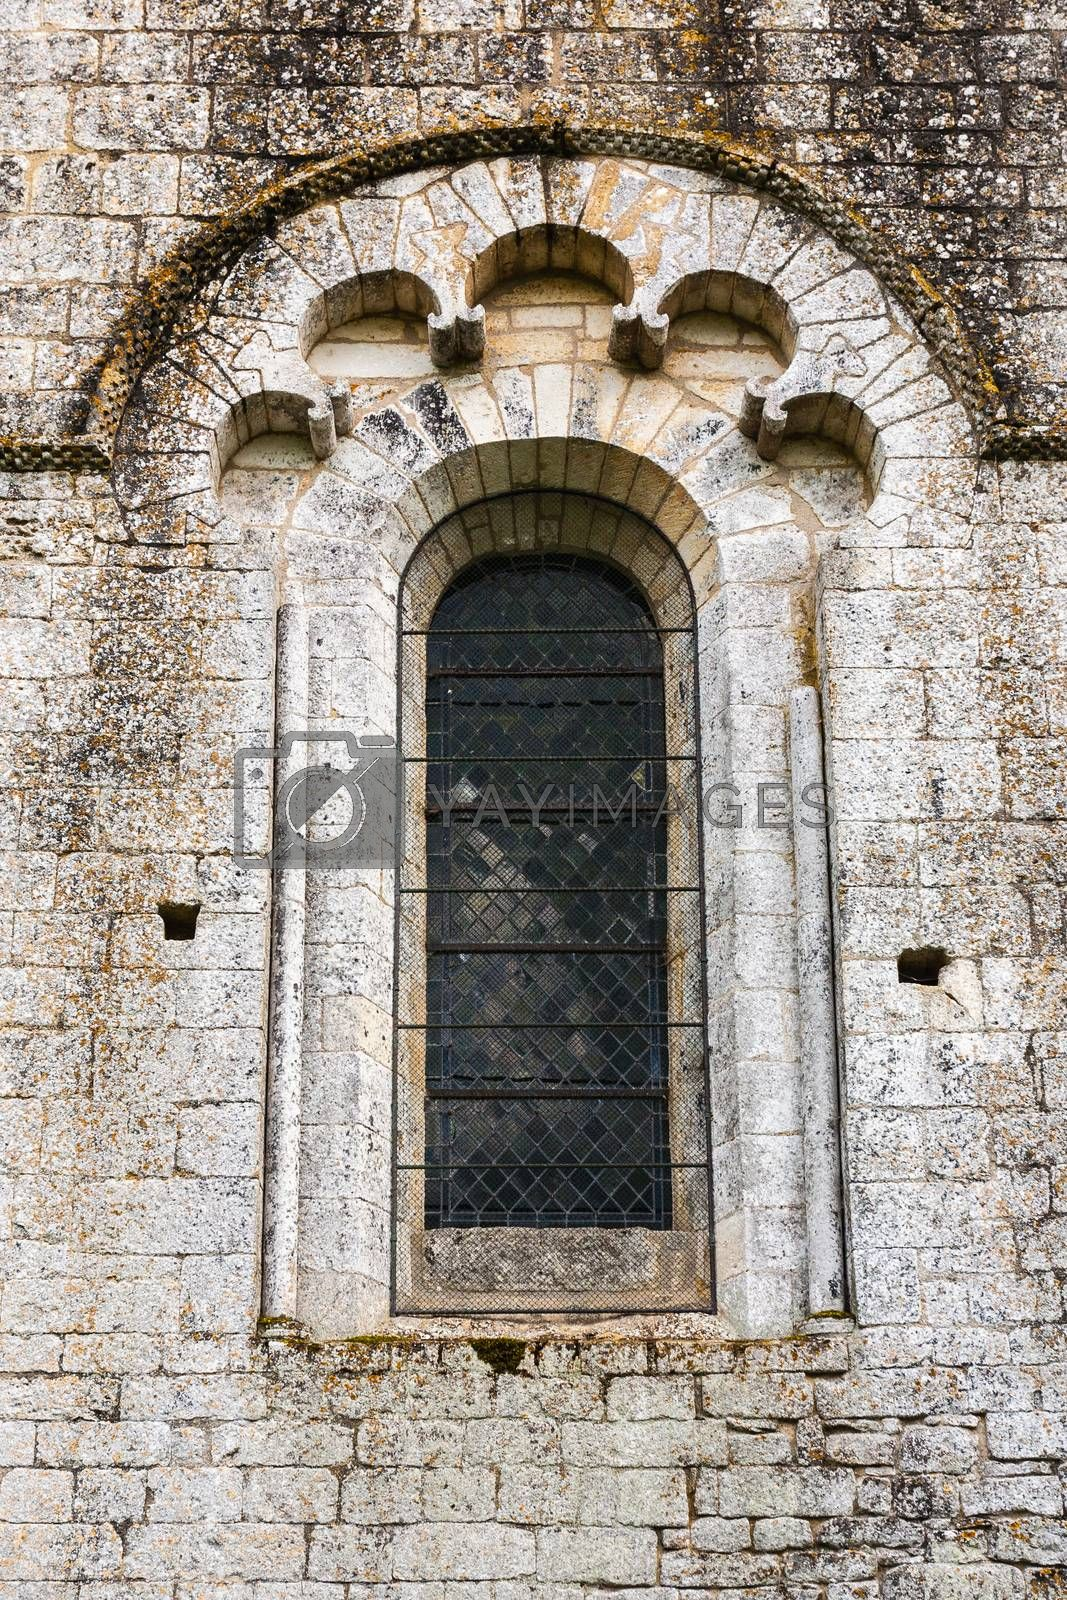 beautiful romanesque window in the romanesque fortified church of Saint Amand de Coly in Dordigne ,France